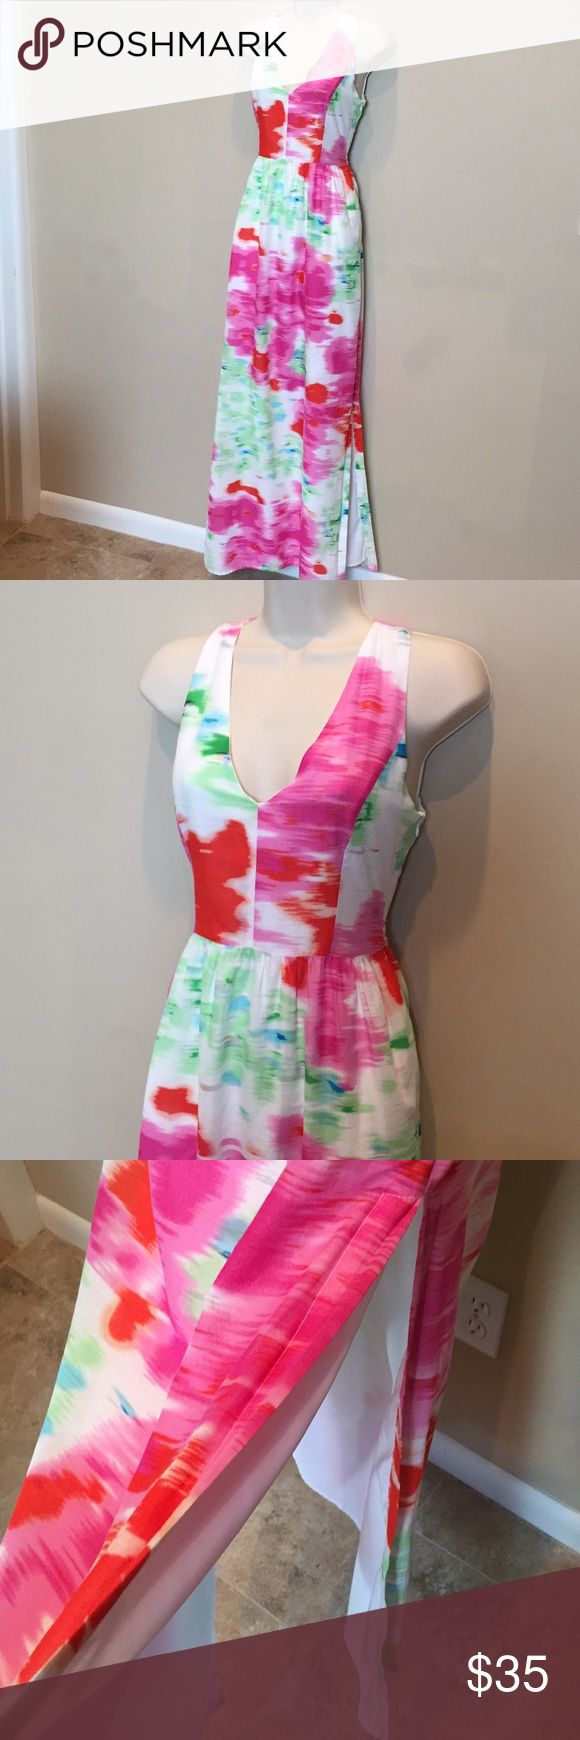 "MM Couture Maxi Dress Watercolor Keyhole Back XS MM Couture by Miss Me beautiful maxi dress, halter style neckline, keyhole back, hidden side zipper. Watercolor pastel colors. Cool 100% cotton, fully lined. Size XS, 16"" across chest, 58"" total length. Slits on both sides. MM Couture Dresses Maxi"